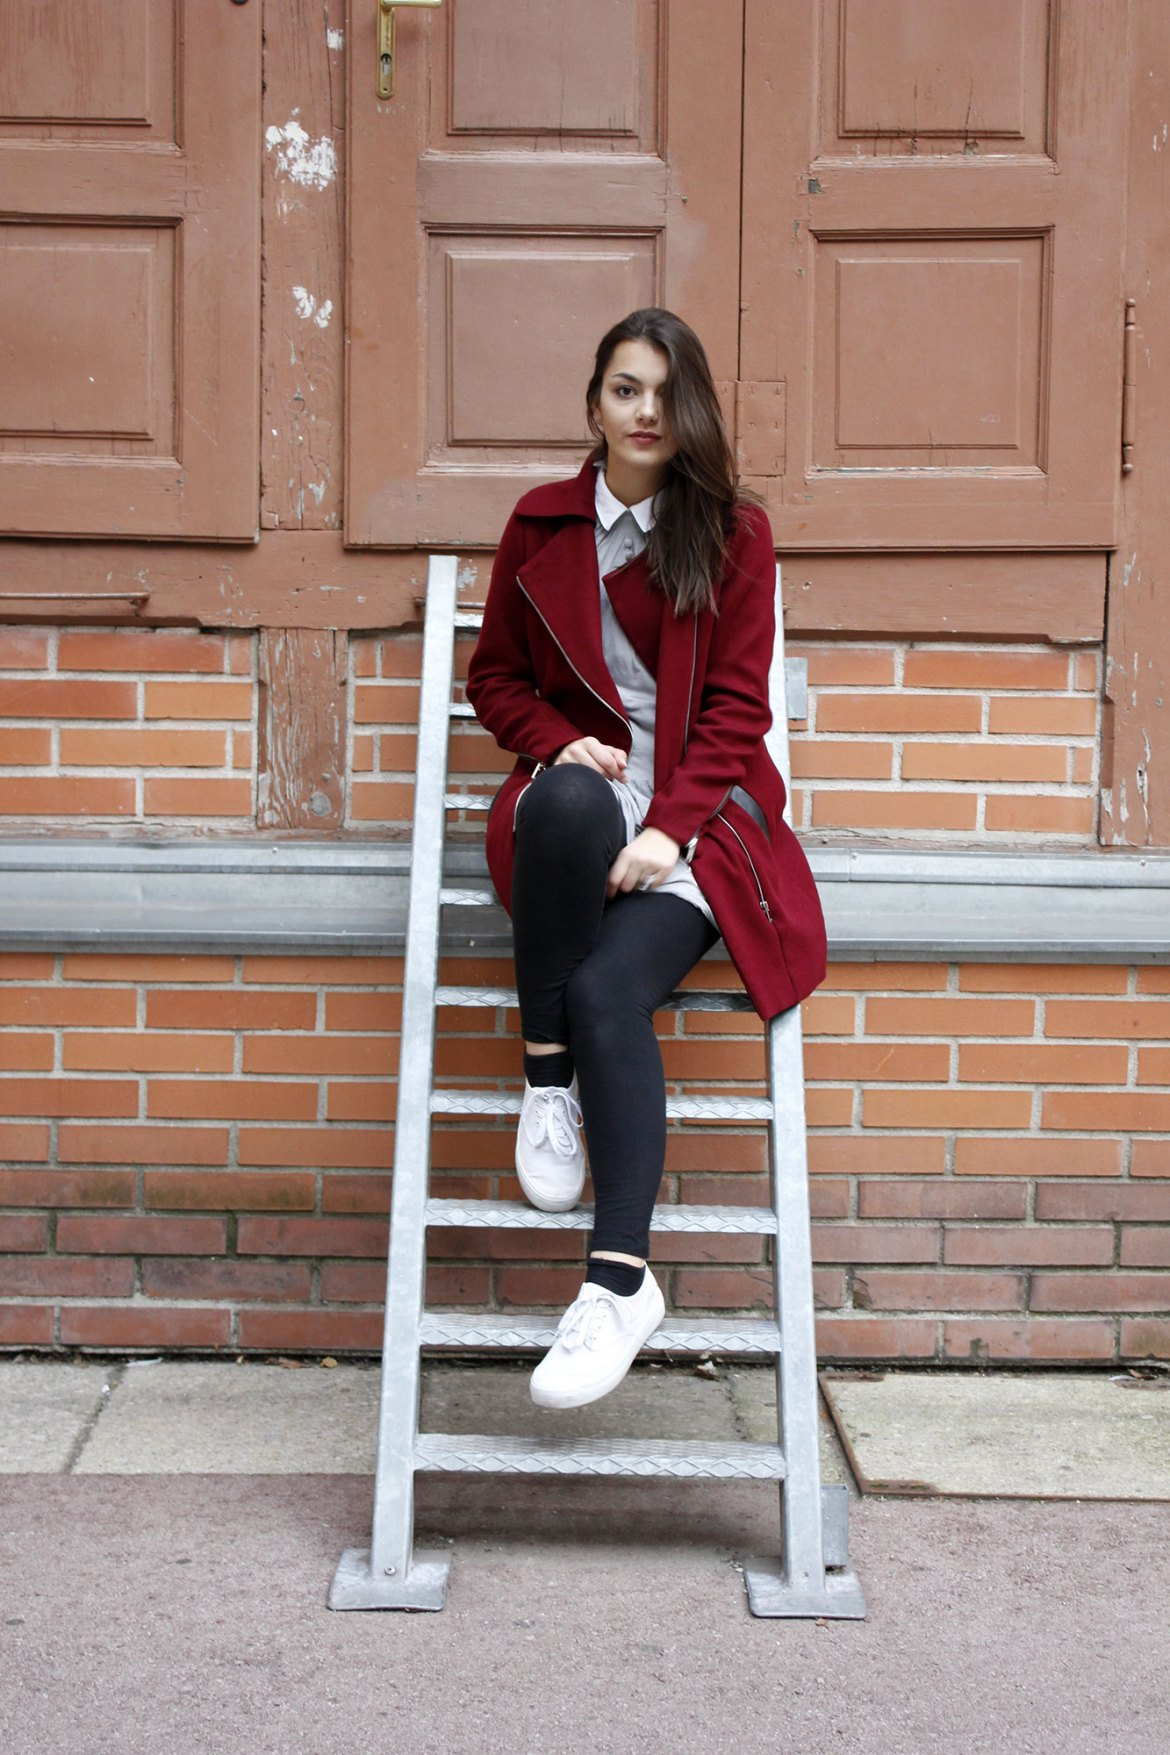 Dorie sitting on a ladder, wearing a red coat from Stradivarius, a grey dress, black legging and white shoes from even&odd